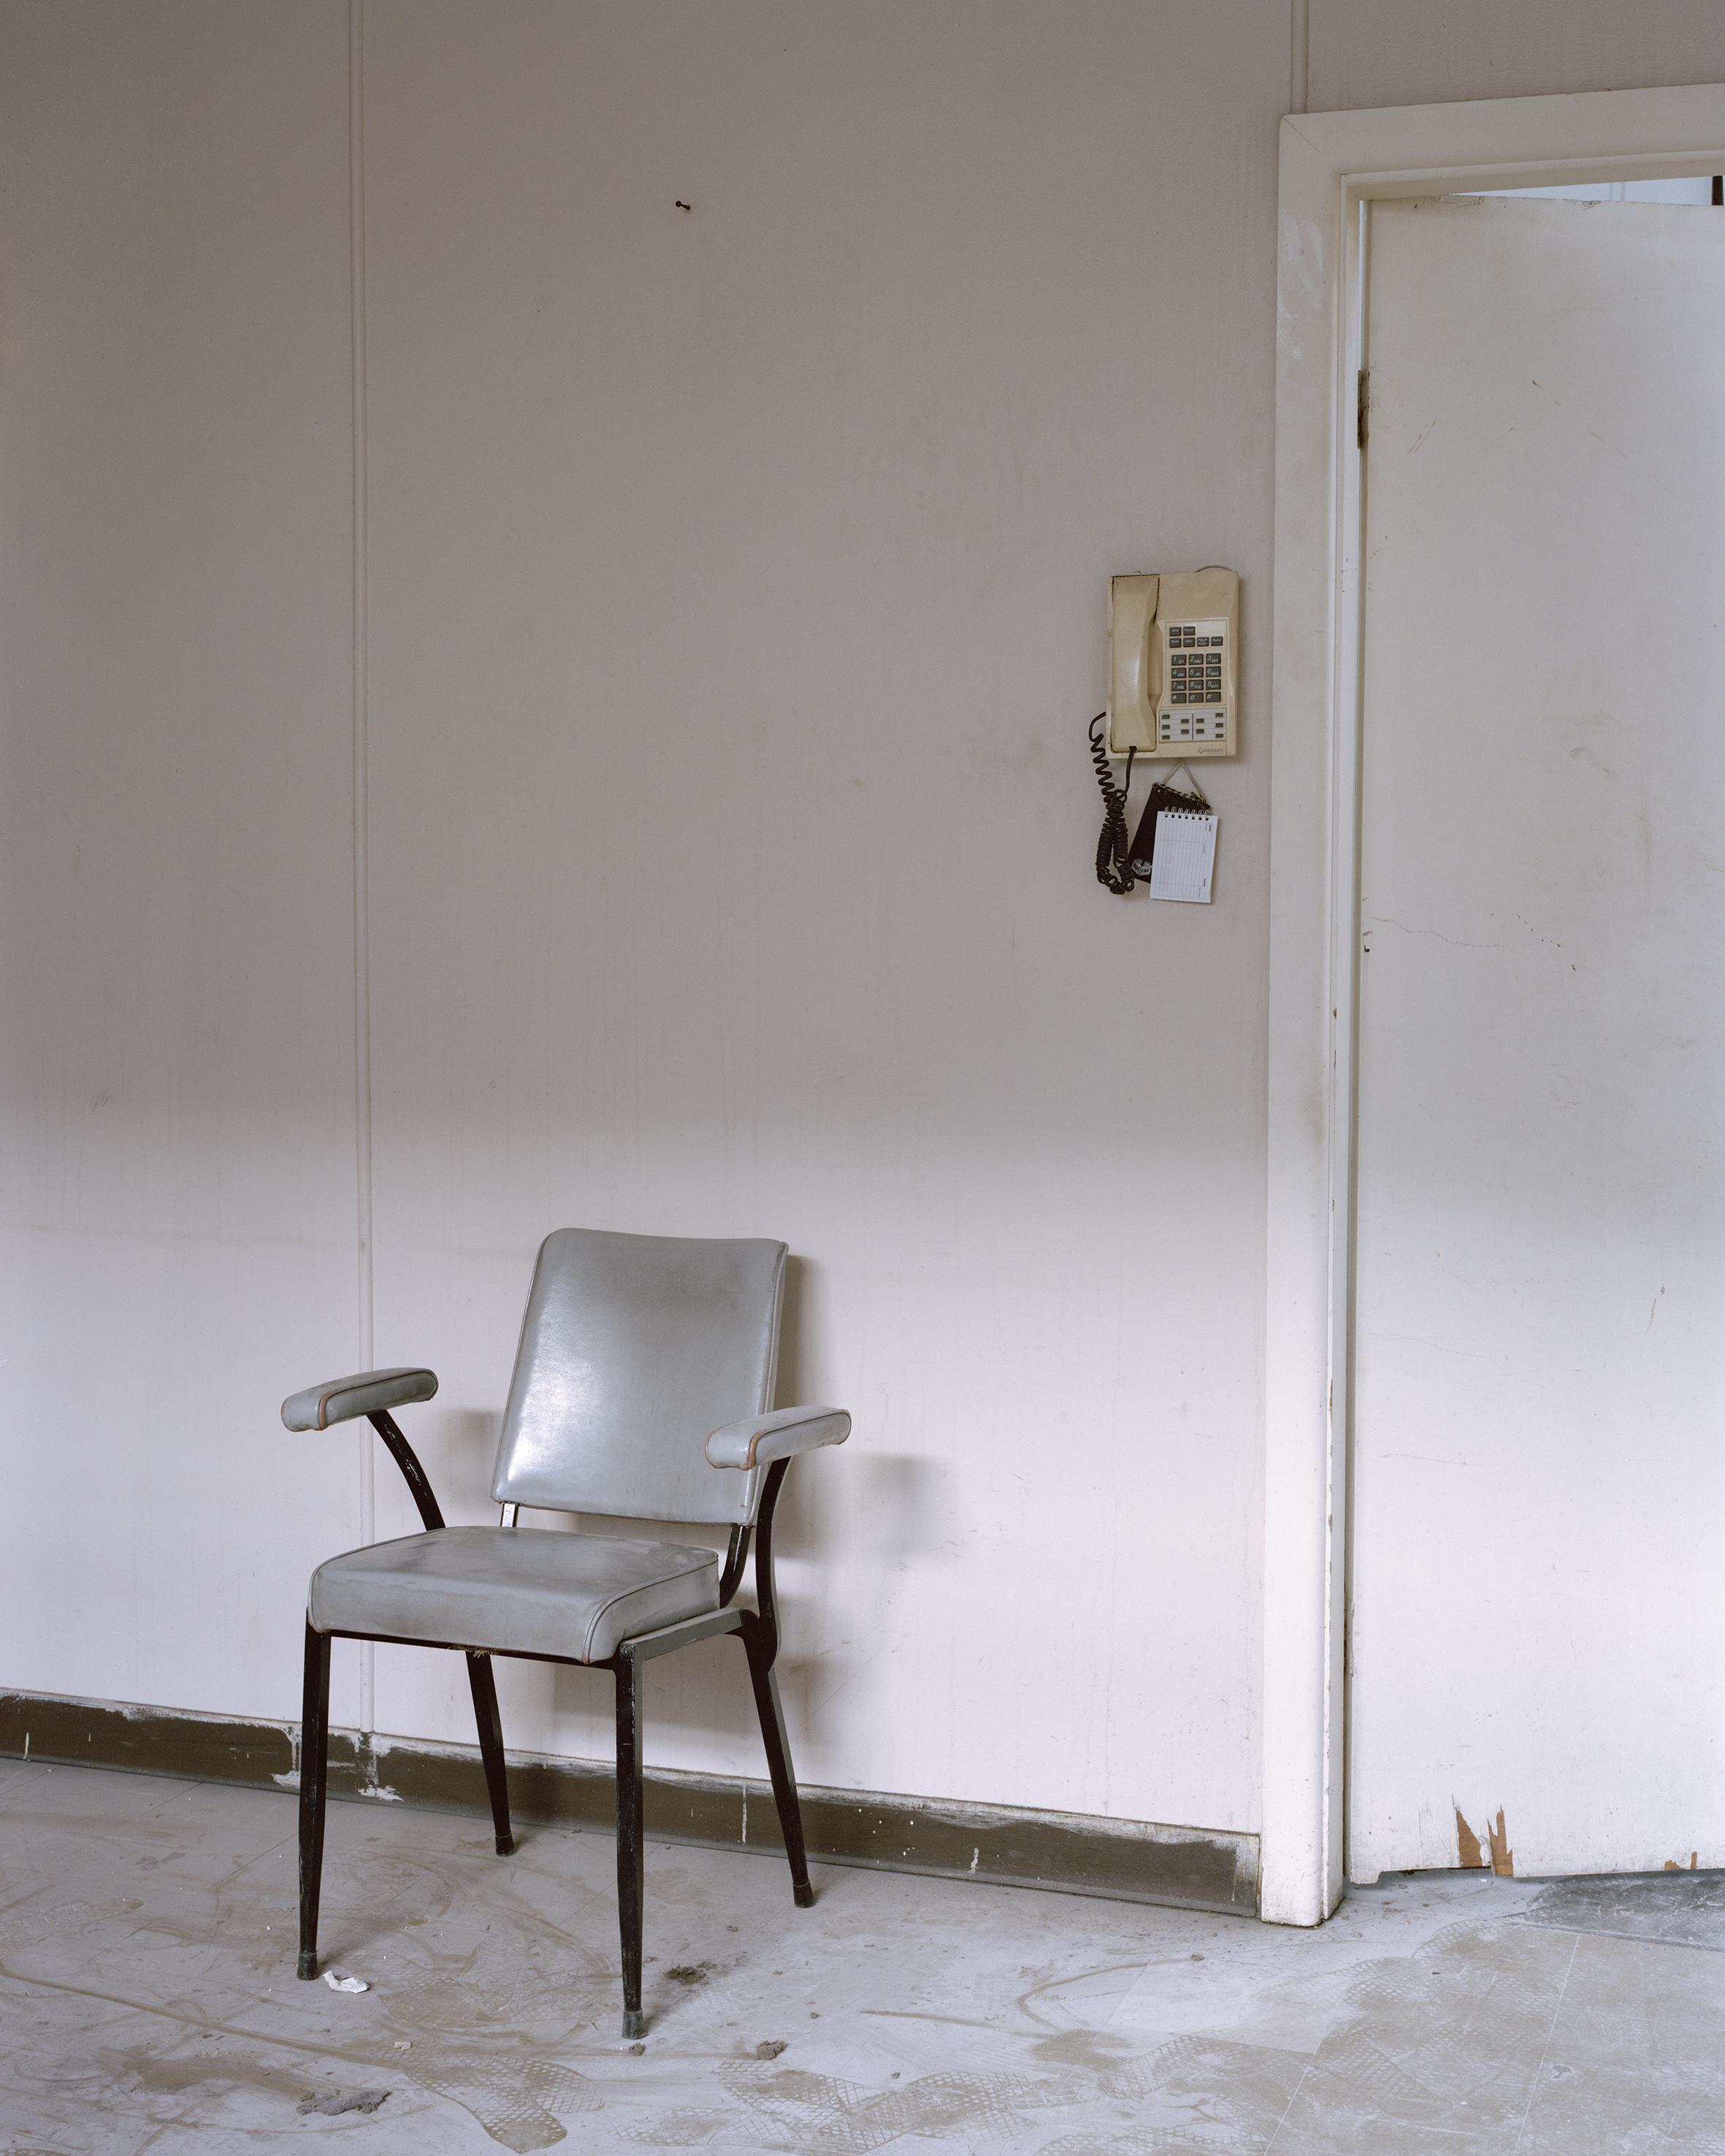 Interior with chair and telephone, Marrickville, Sydney, New South Wales, Australia, 2015.